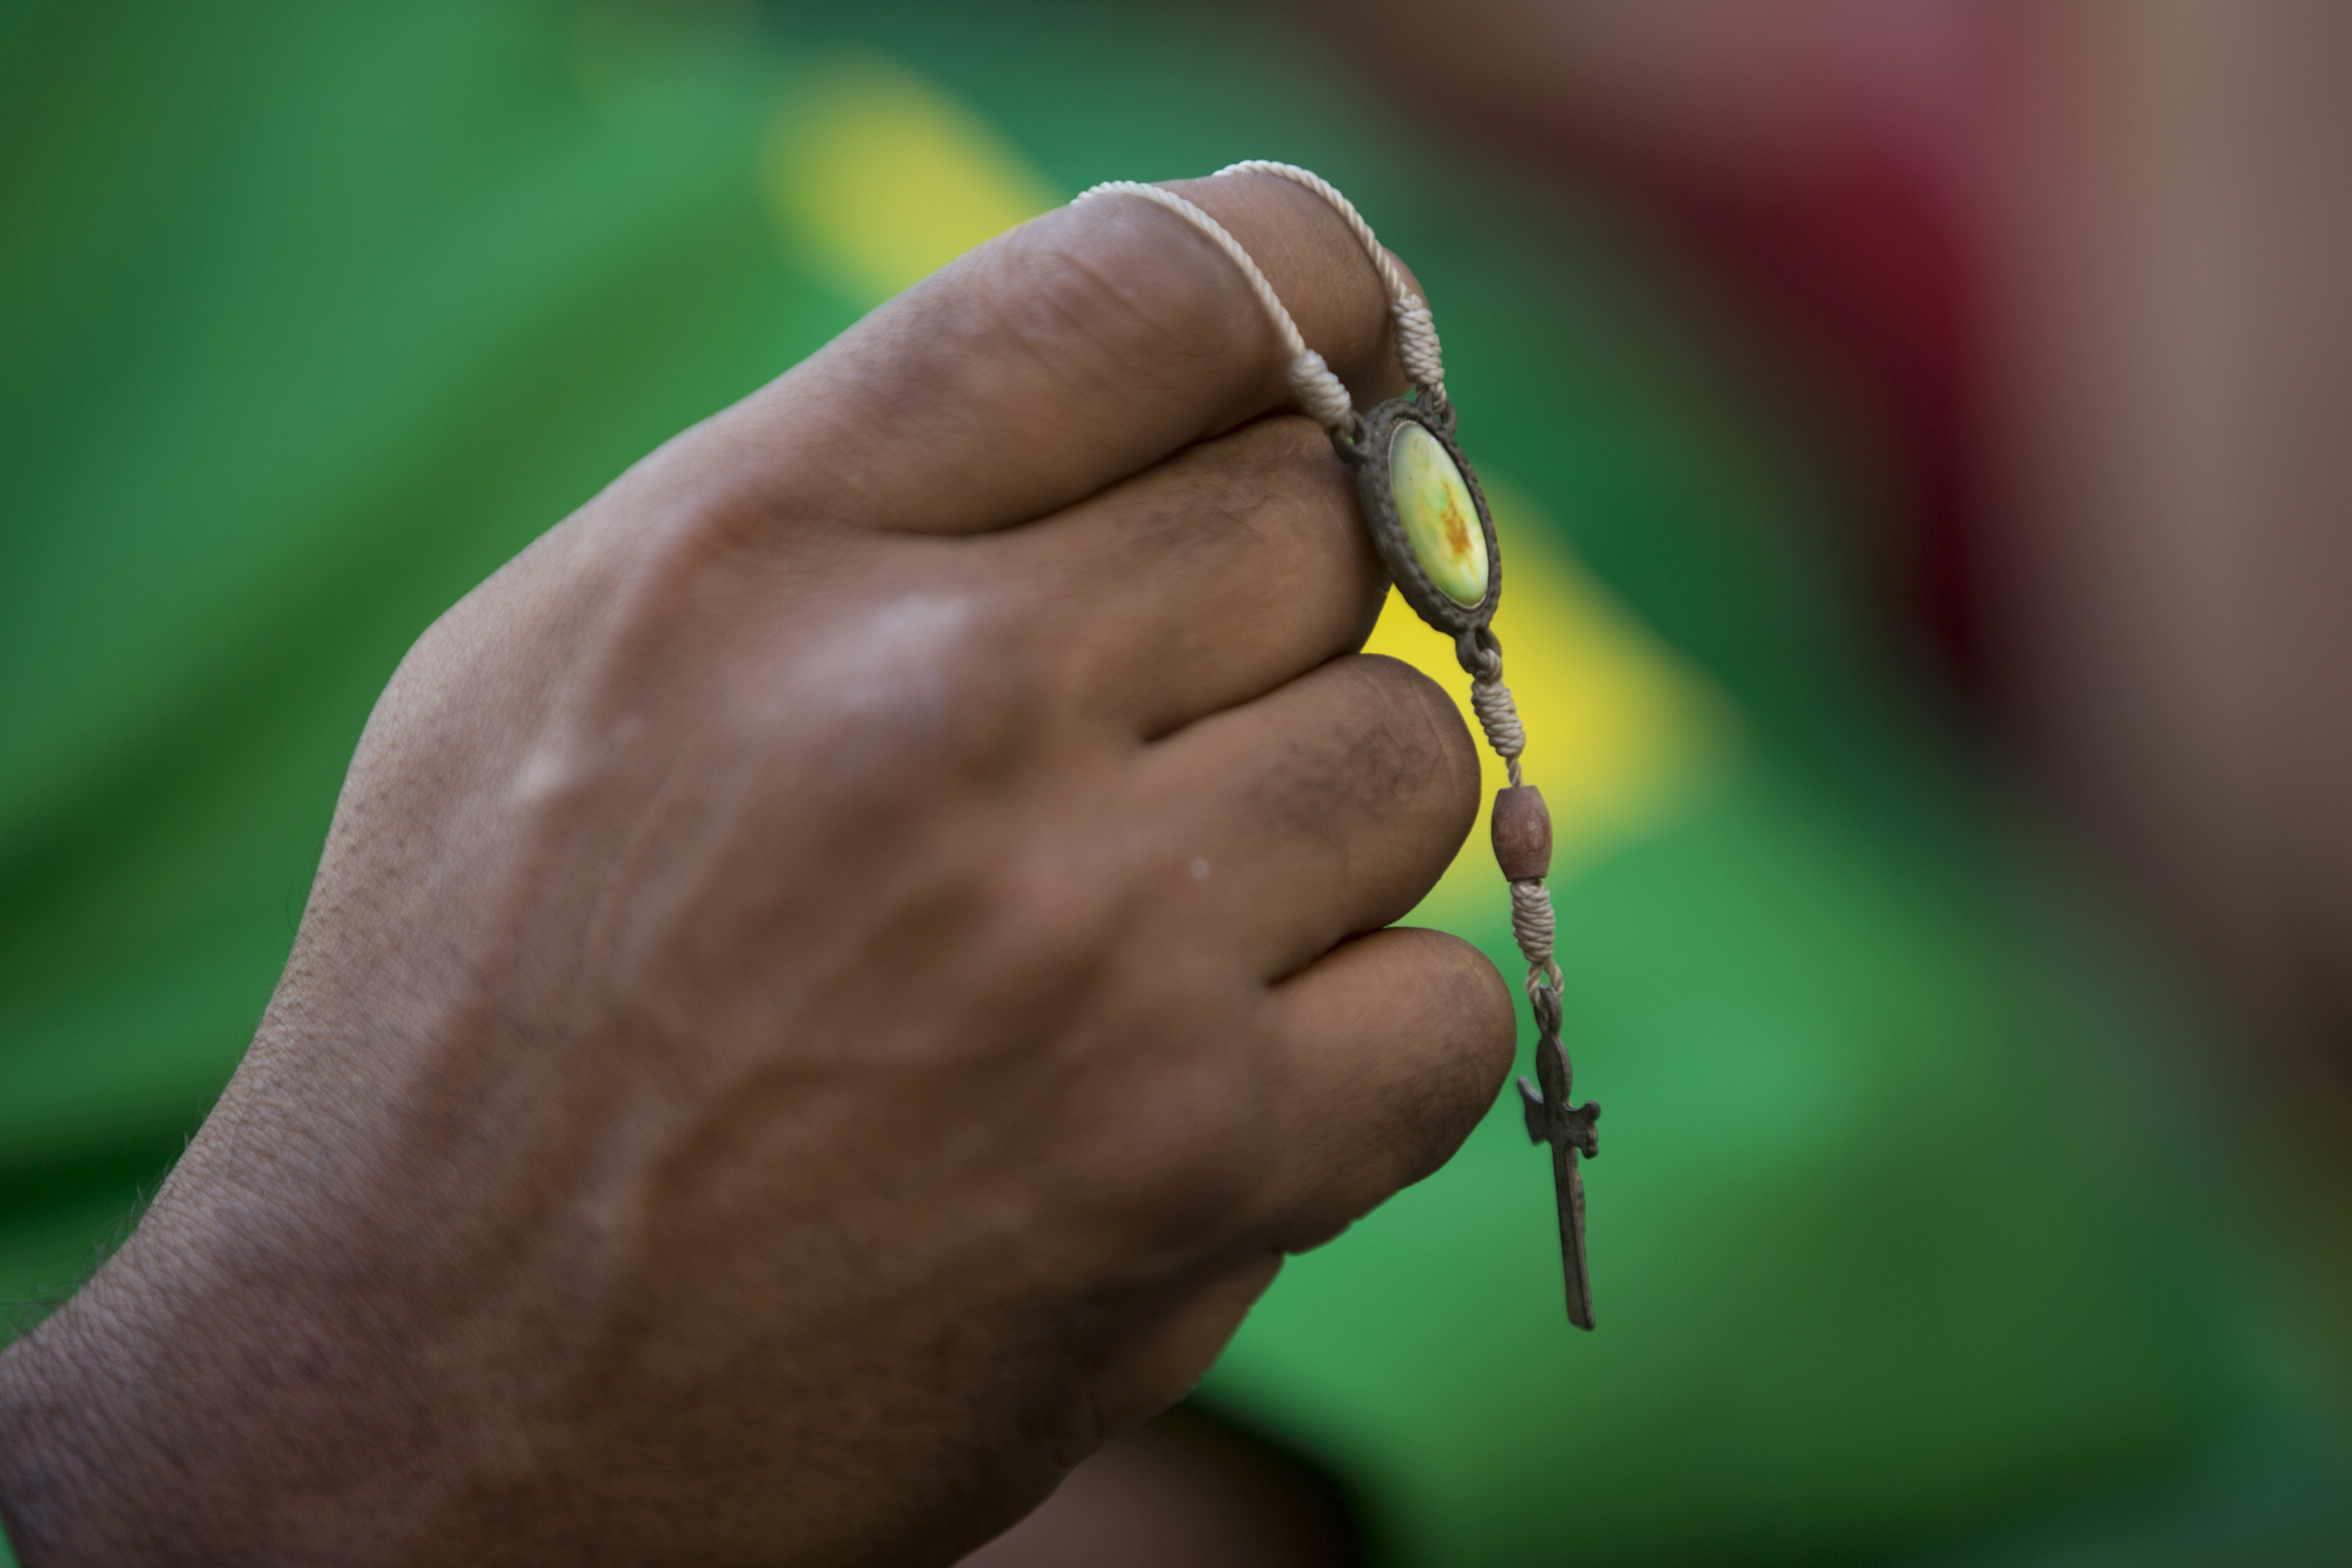 <div class='meta'><div class='origin-logo' data-origin='none'></div><span class='caption-text' data-credit='Silvia Izquierdo/AP Photo'>A Brazil soccer fan holds a cross during his team's World Cup match against Costa Rica in Rio de Janeiro, Brazil, Friday, June 22, 2018.</span></div>